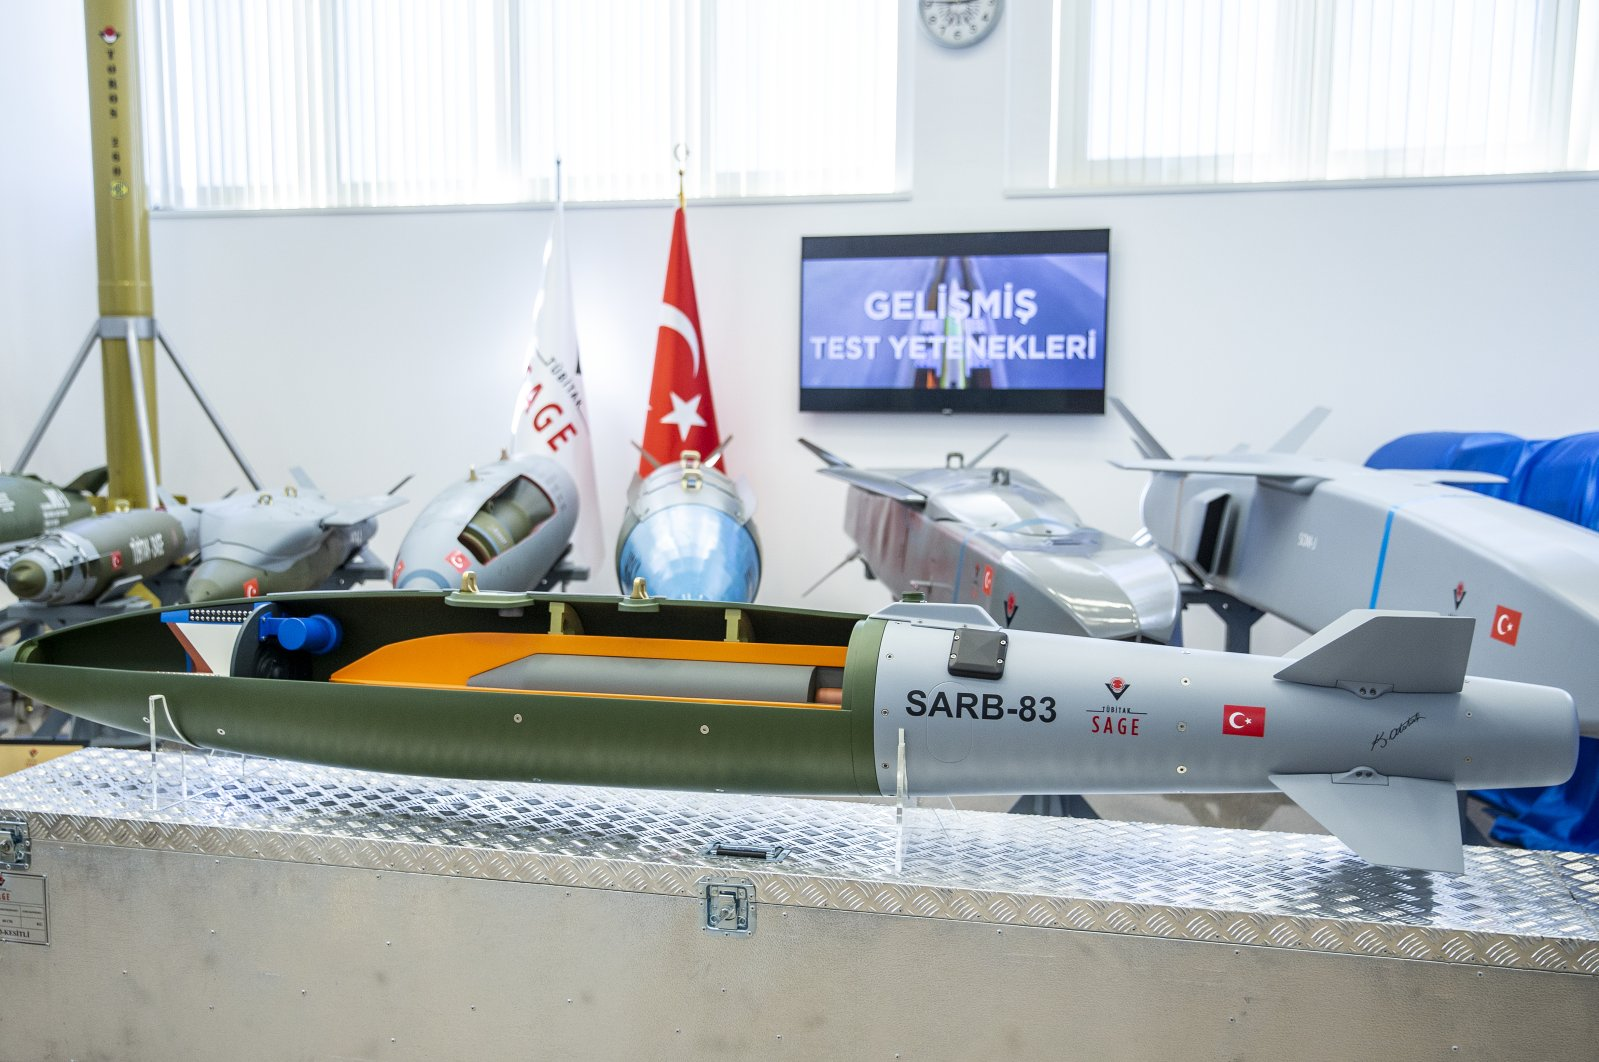 SARB-83 ammunition developed by the TÜBITAK SAGE is displayed at the SAGE headquarters in Ankara, Turkey on July 6, 2020. (AA Photo)